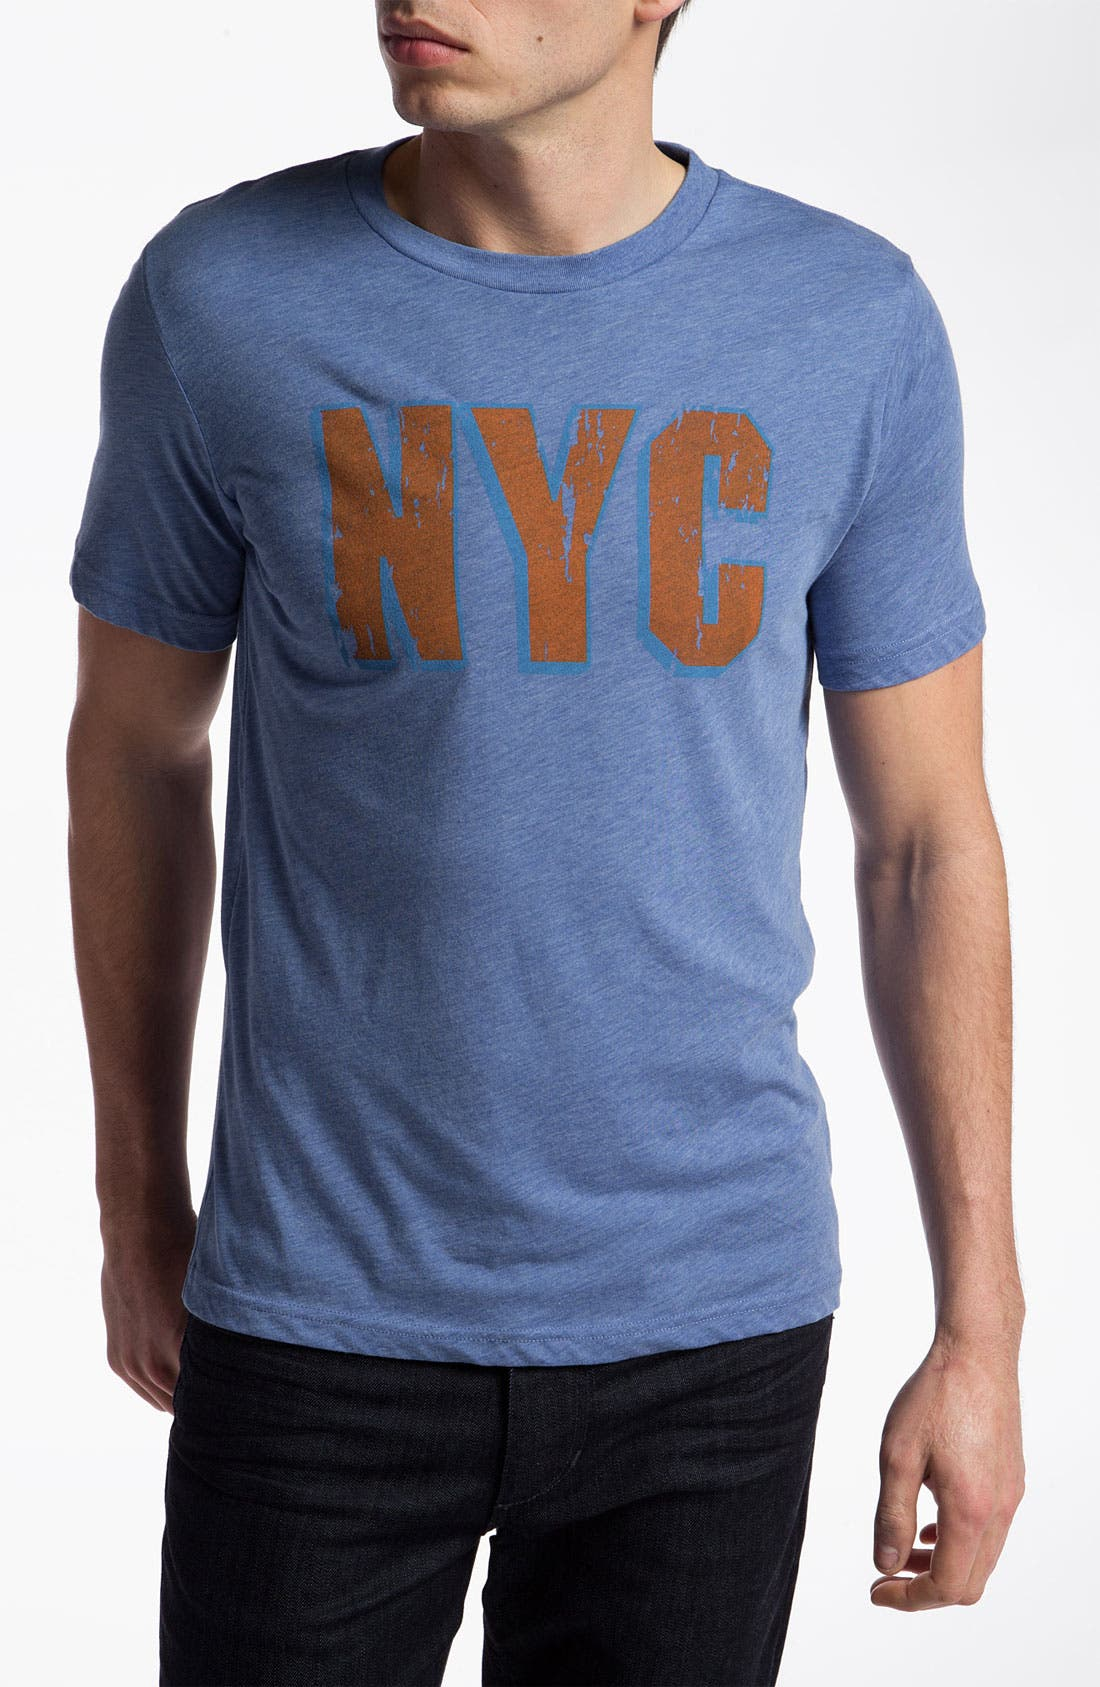 Alternate Image 1 Selected - DiLascia 'NYC' T-Shirt